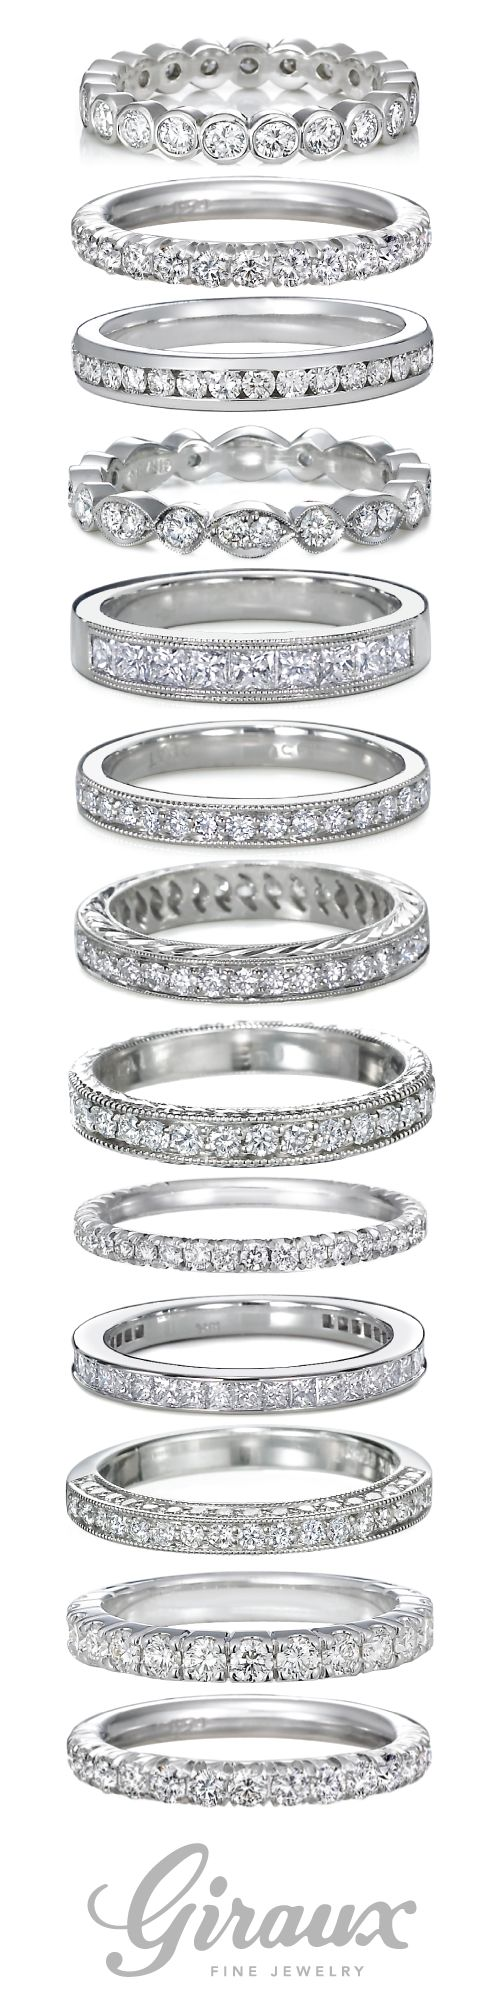 diamond wedding bands big diamond wedding rings Diamond Ladies Wedding Bands come in so many shapes and styles Giraux Fine Jewelry is